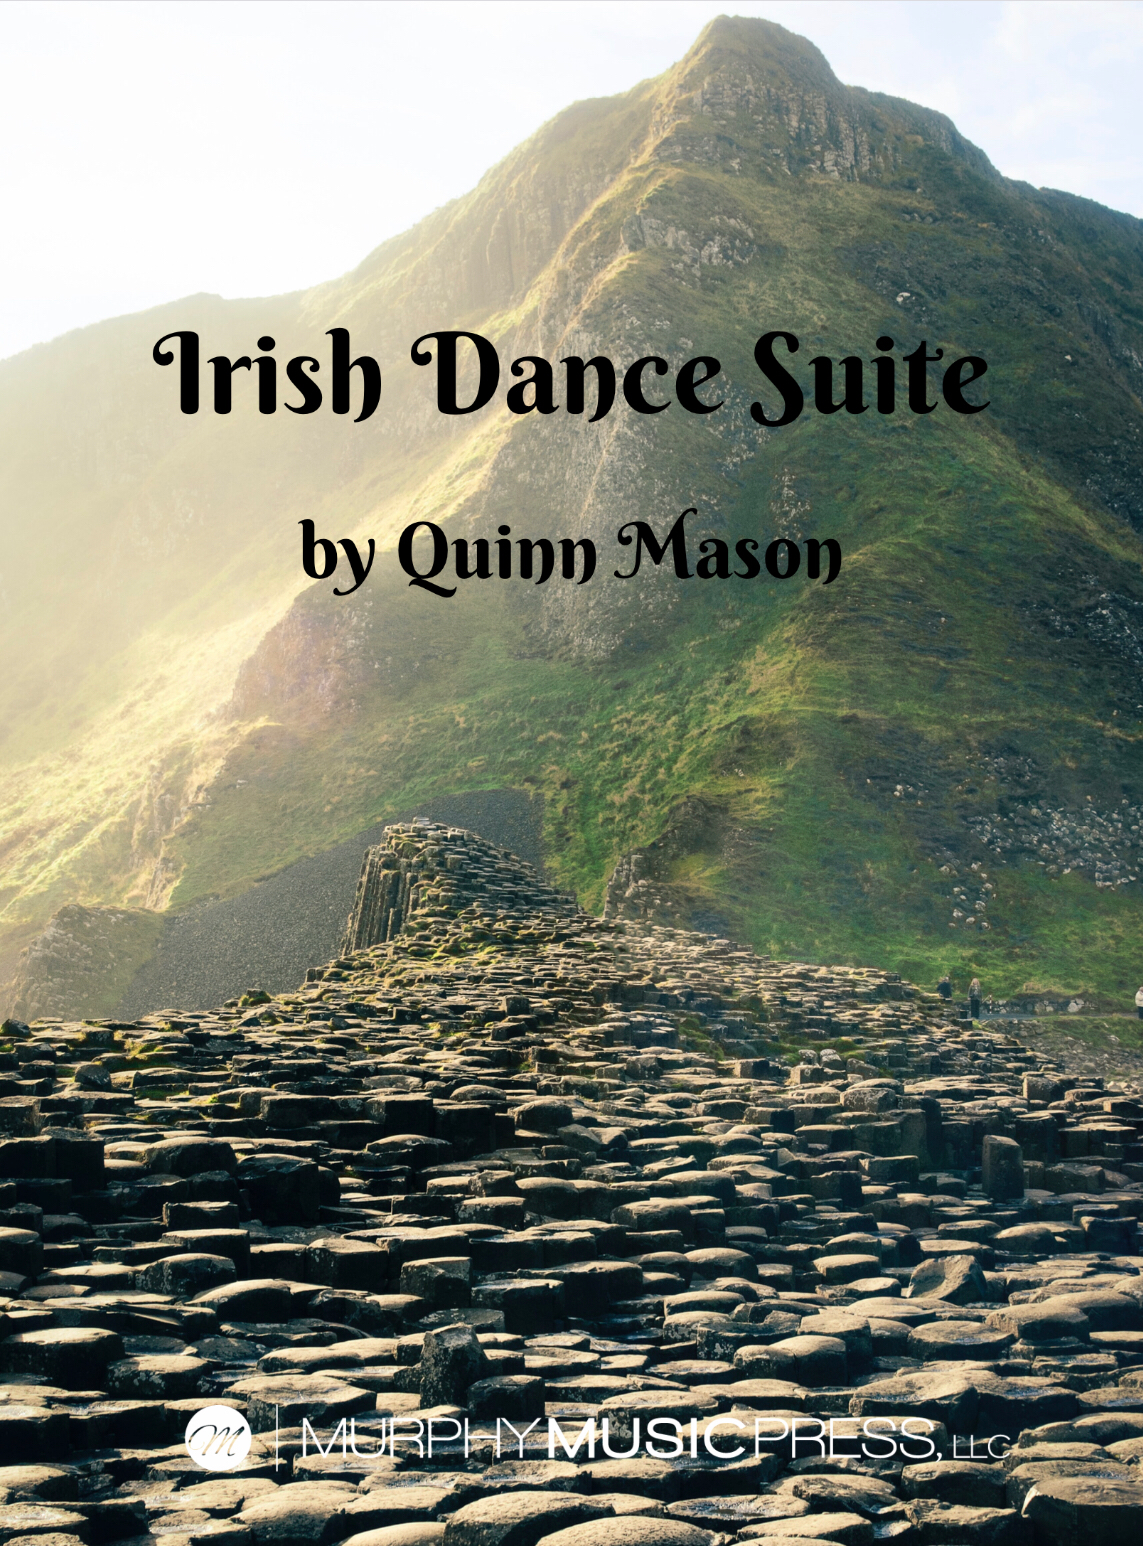 Irish Dance Suite by Quinn Mason